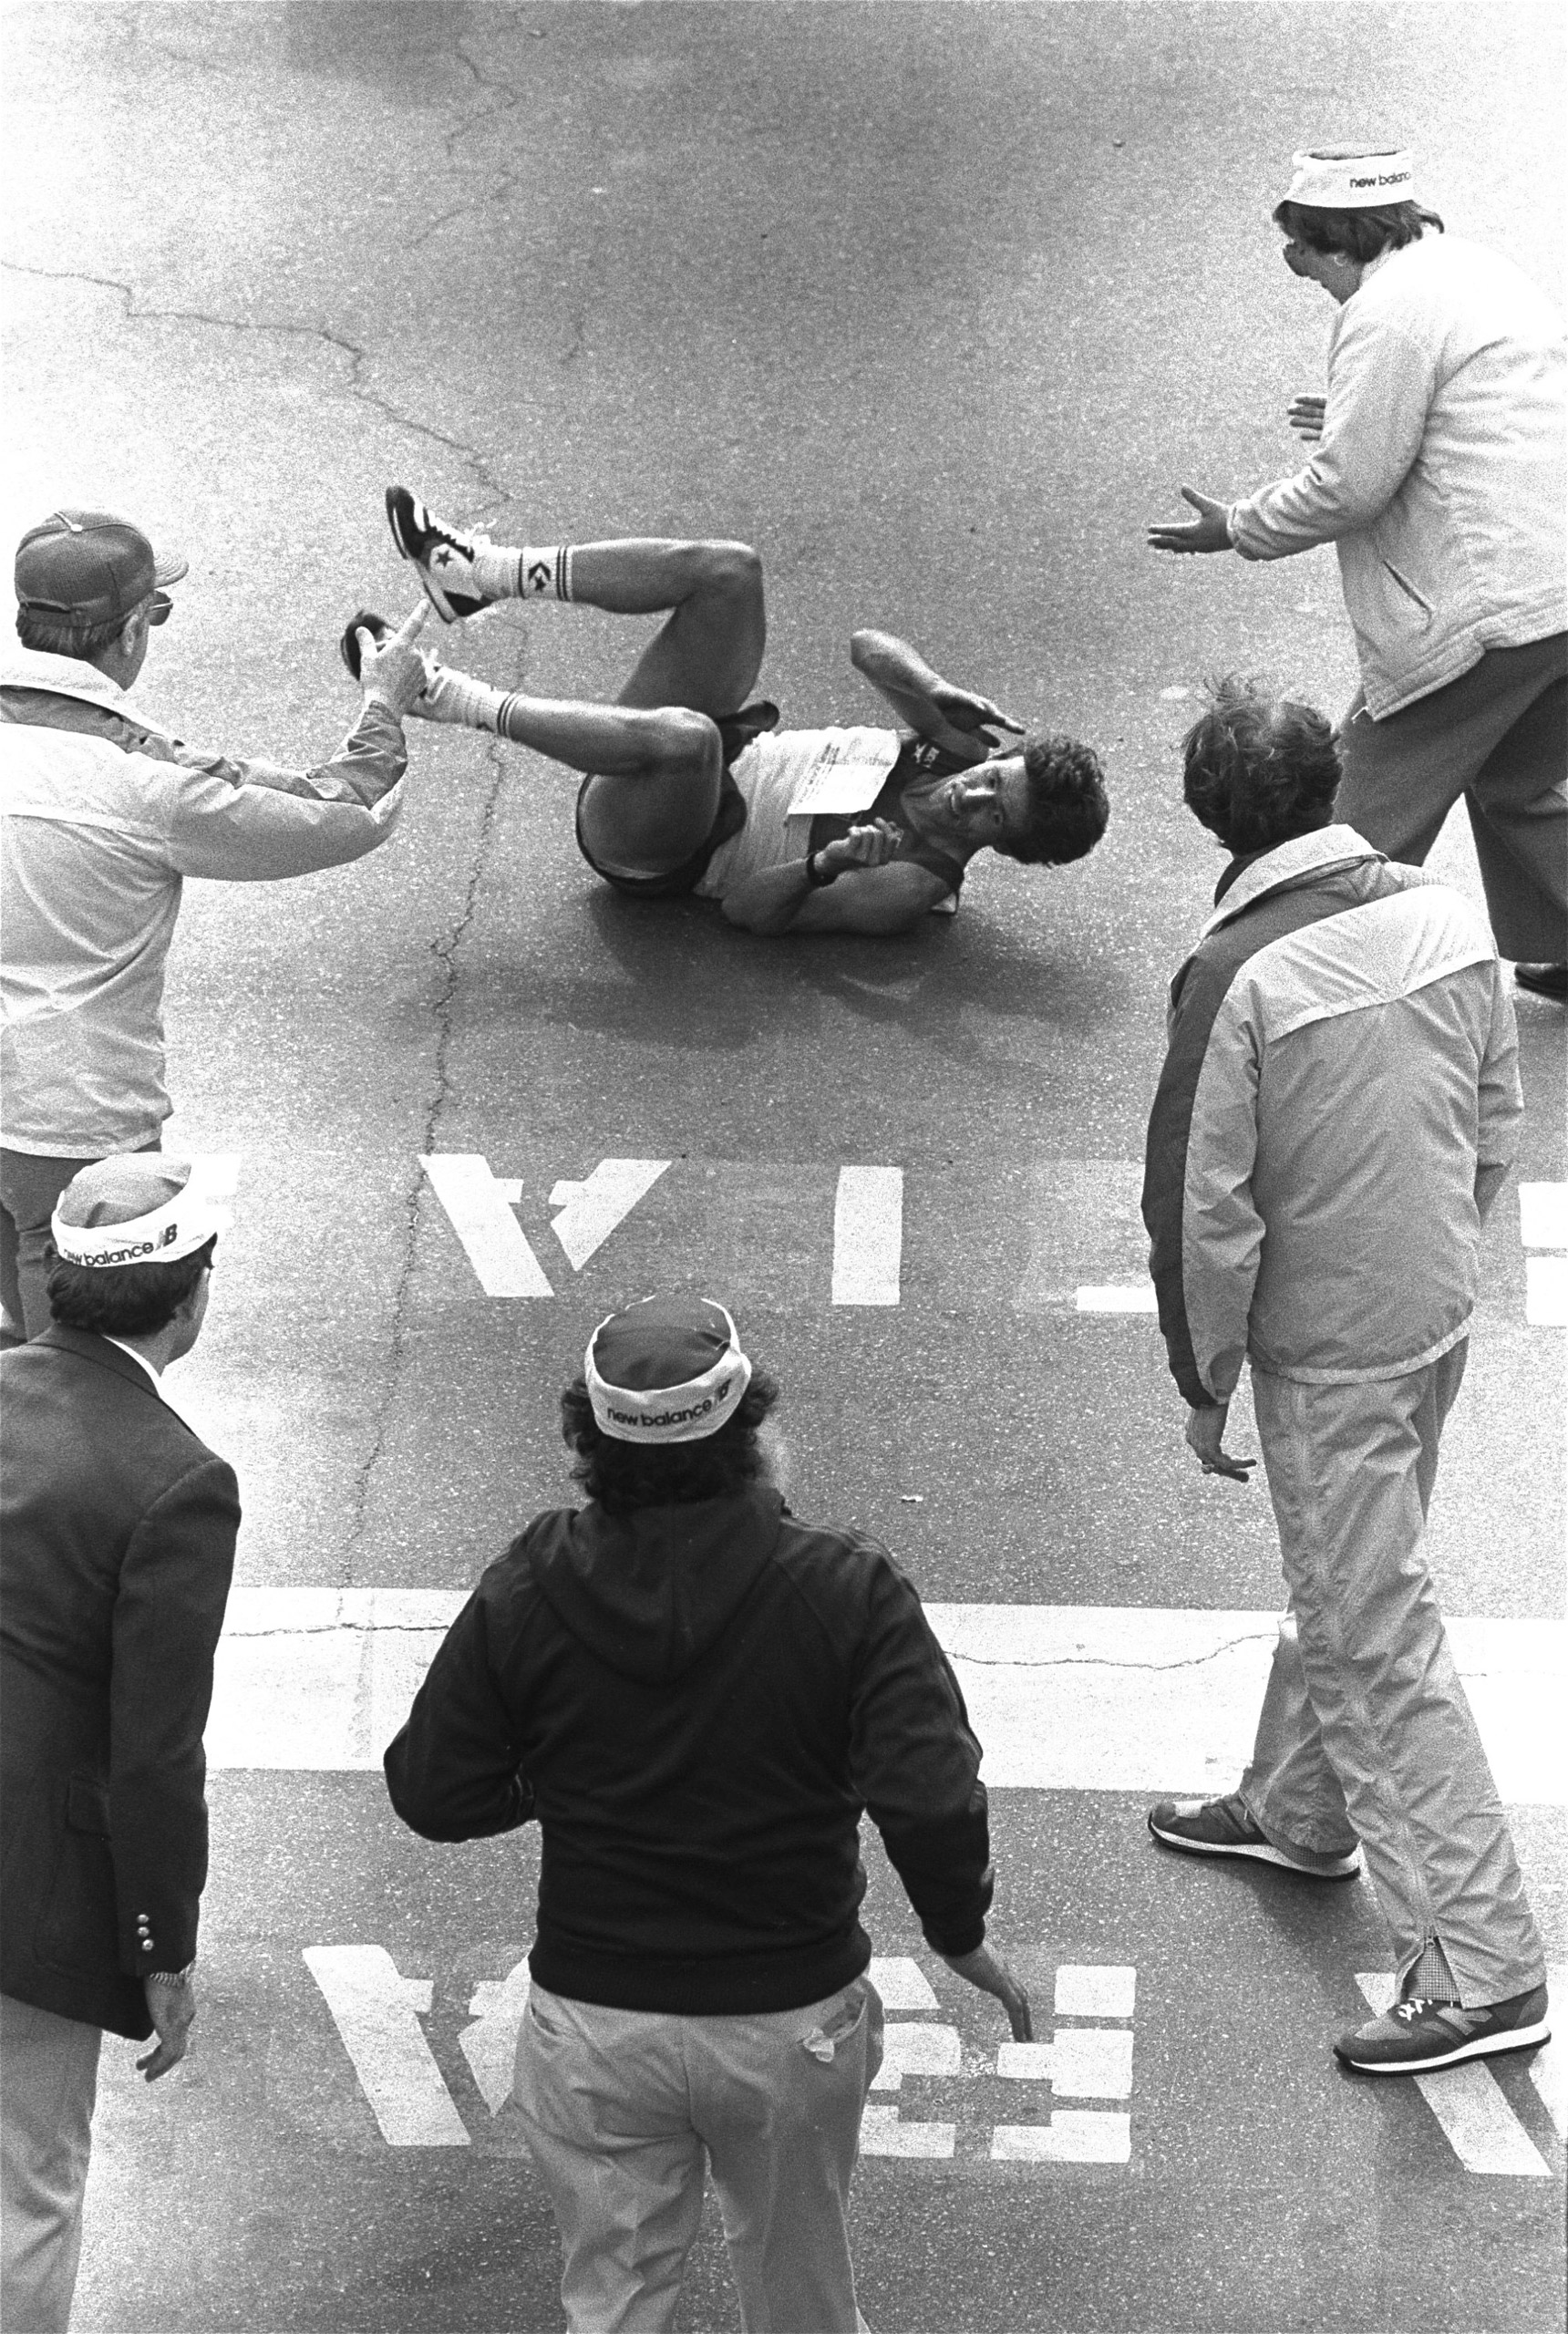 Dave Reinhart falls for a second time just short of the finish line of the Boston Marathon, 1983. Reinhart was able to stand and cross the finish line ahead of record setter Joan Benoit, who finished with a time of 2 hours 22 minutes 42 seconds.